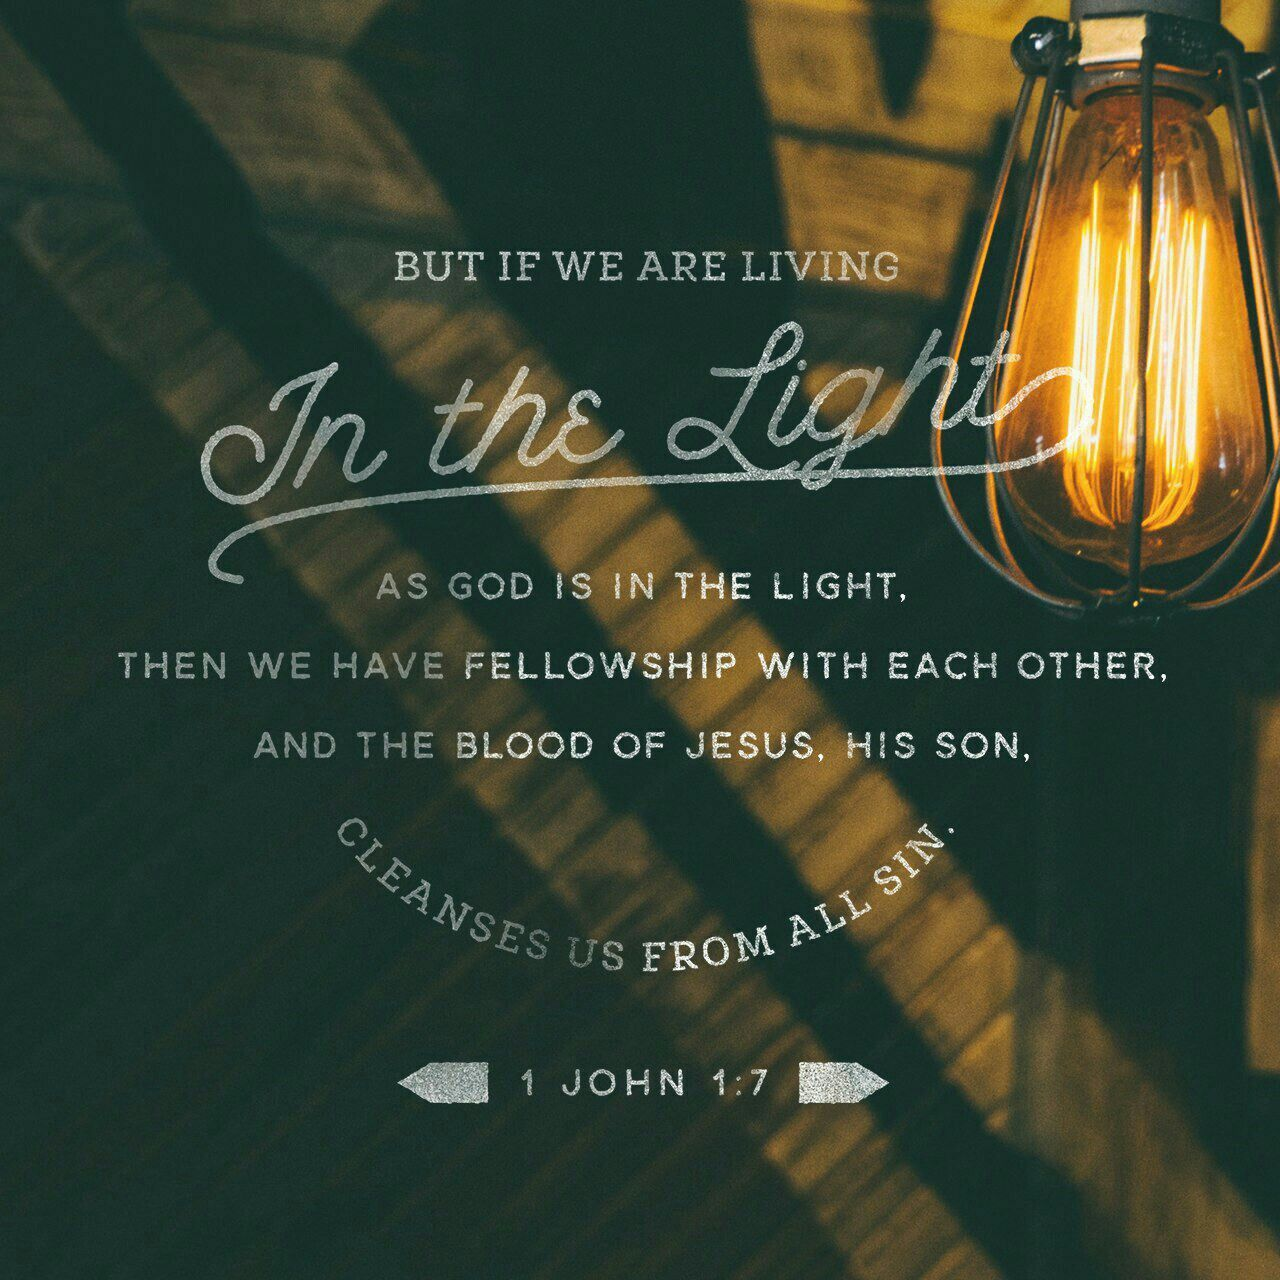 Eye Walking I John Faith Pinterest Christian Inspiration John But If We Are Living As Is Guidance Verses Bible Verses About Lightning Bible Verses About Light We Have Fellowship